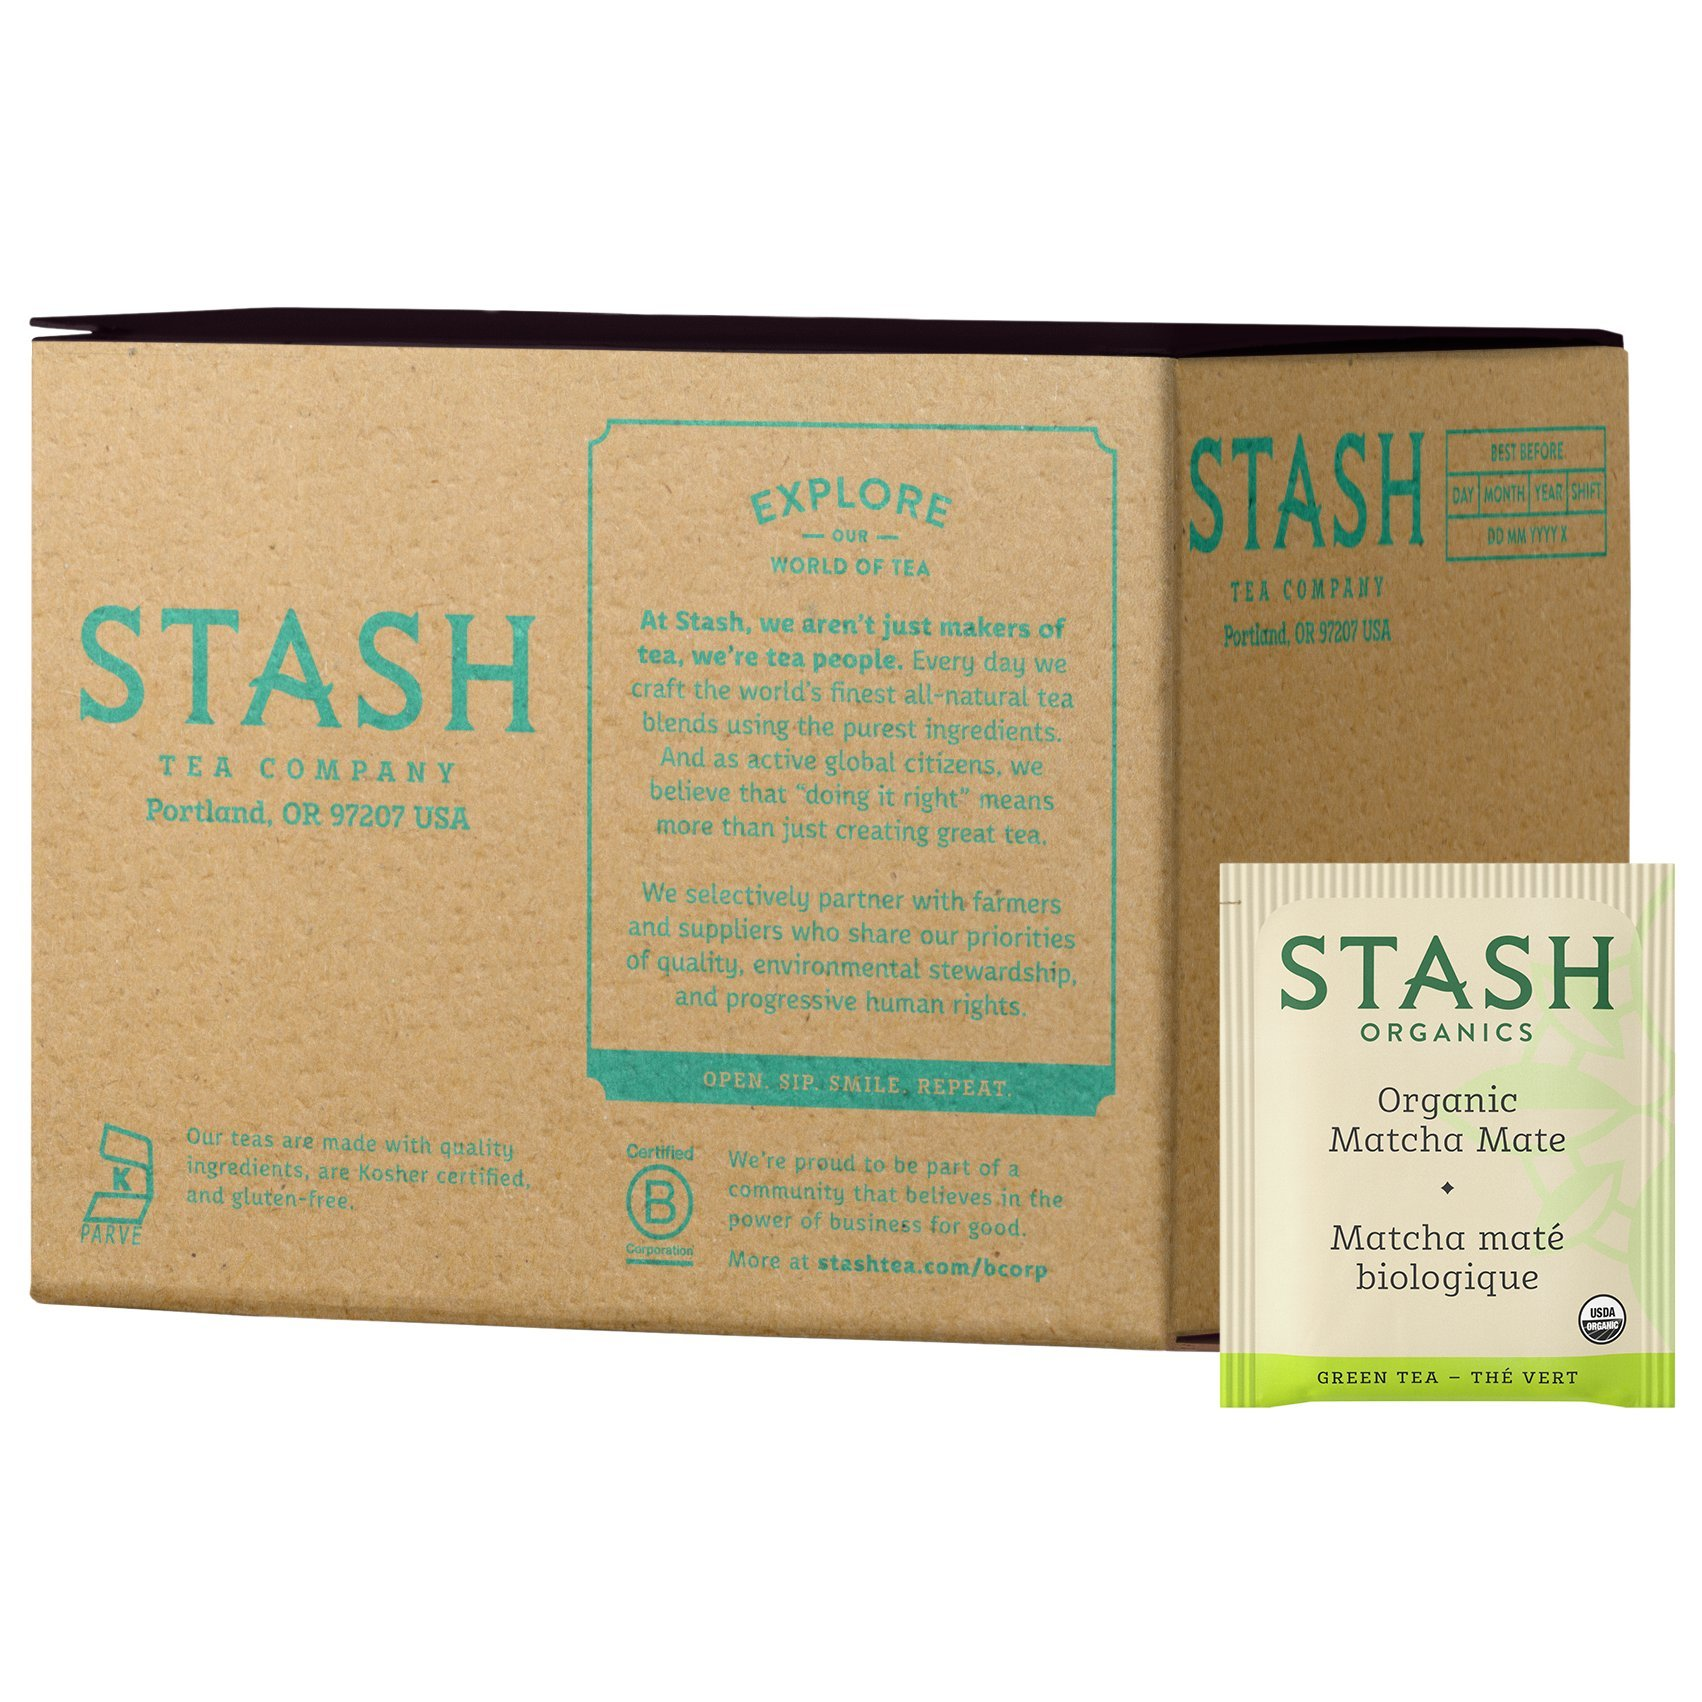 Stash Tea Organic Matcha Mate Tea Blend of Matcha Green Tea & Yerba Mate 100 Count Box of Tea Bags in Foil by Stash